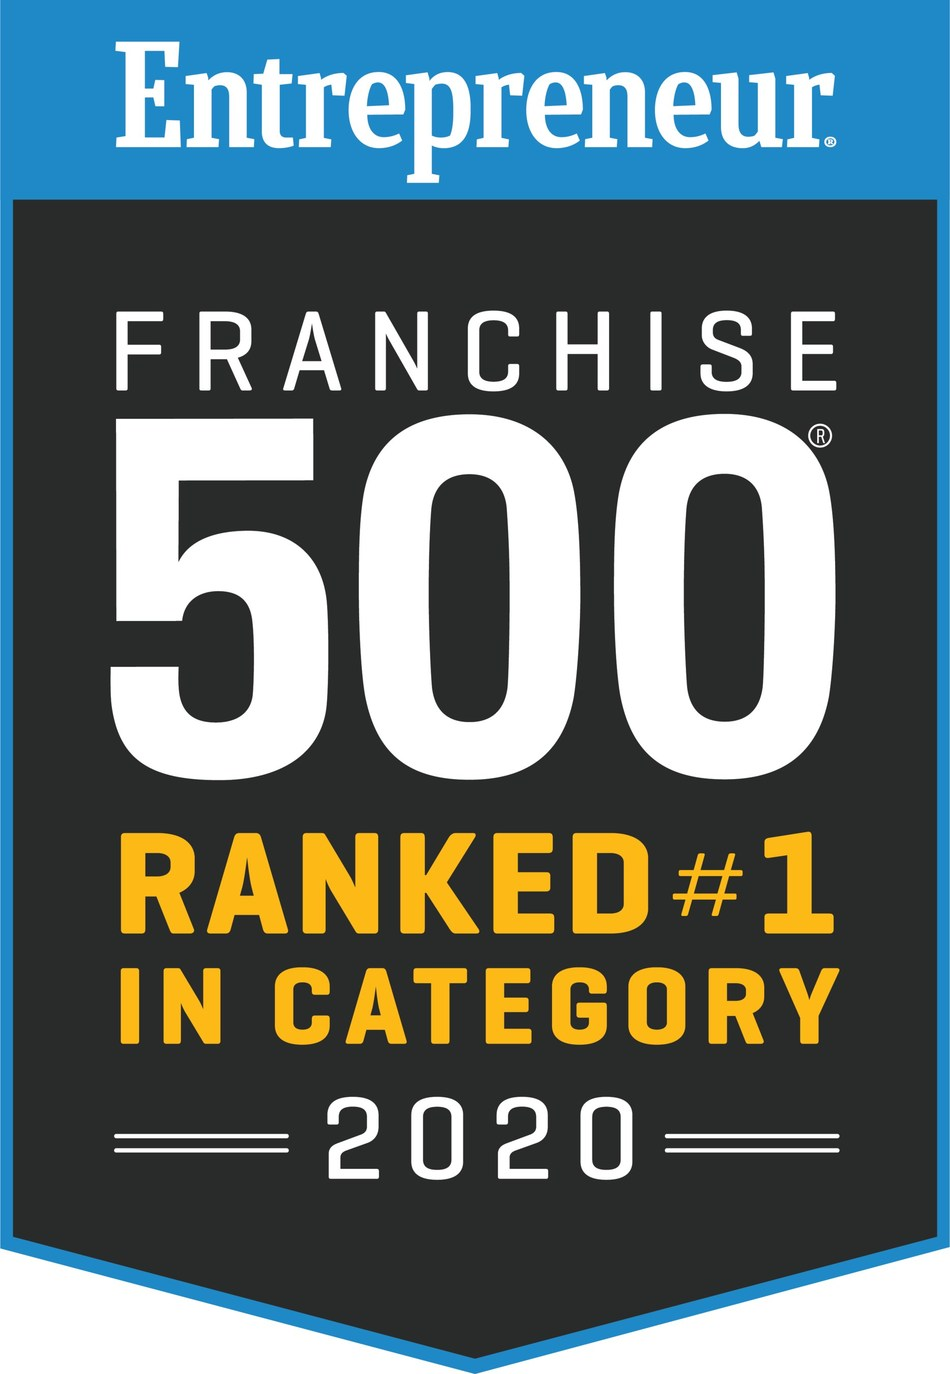 LINE-X, the leading manufacturer of high-performance protective coatings and industry-leading automotive and lifestyle accessories, was named the #1 Miscellaneous Auto Products and Services category for a record 11th consecutive year as part of Entrepreneur Magazine's 41st annual Franchise 500® rankings. LINE-X's consistent growth, exceptional customer support, brand strength and low franchise fees also helped secure a ranking of #327 on the magazine's prestigious Franchise 500 list.